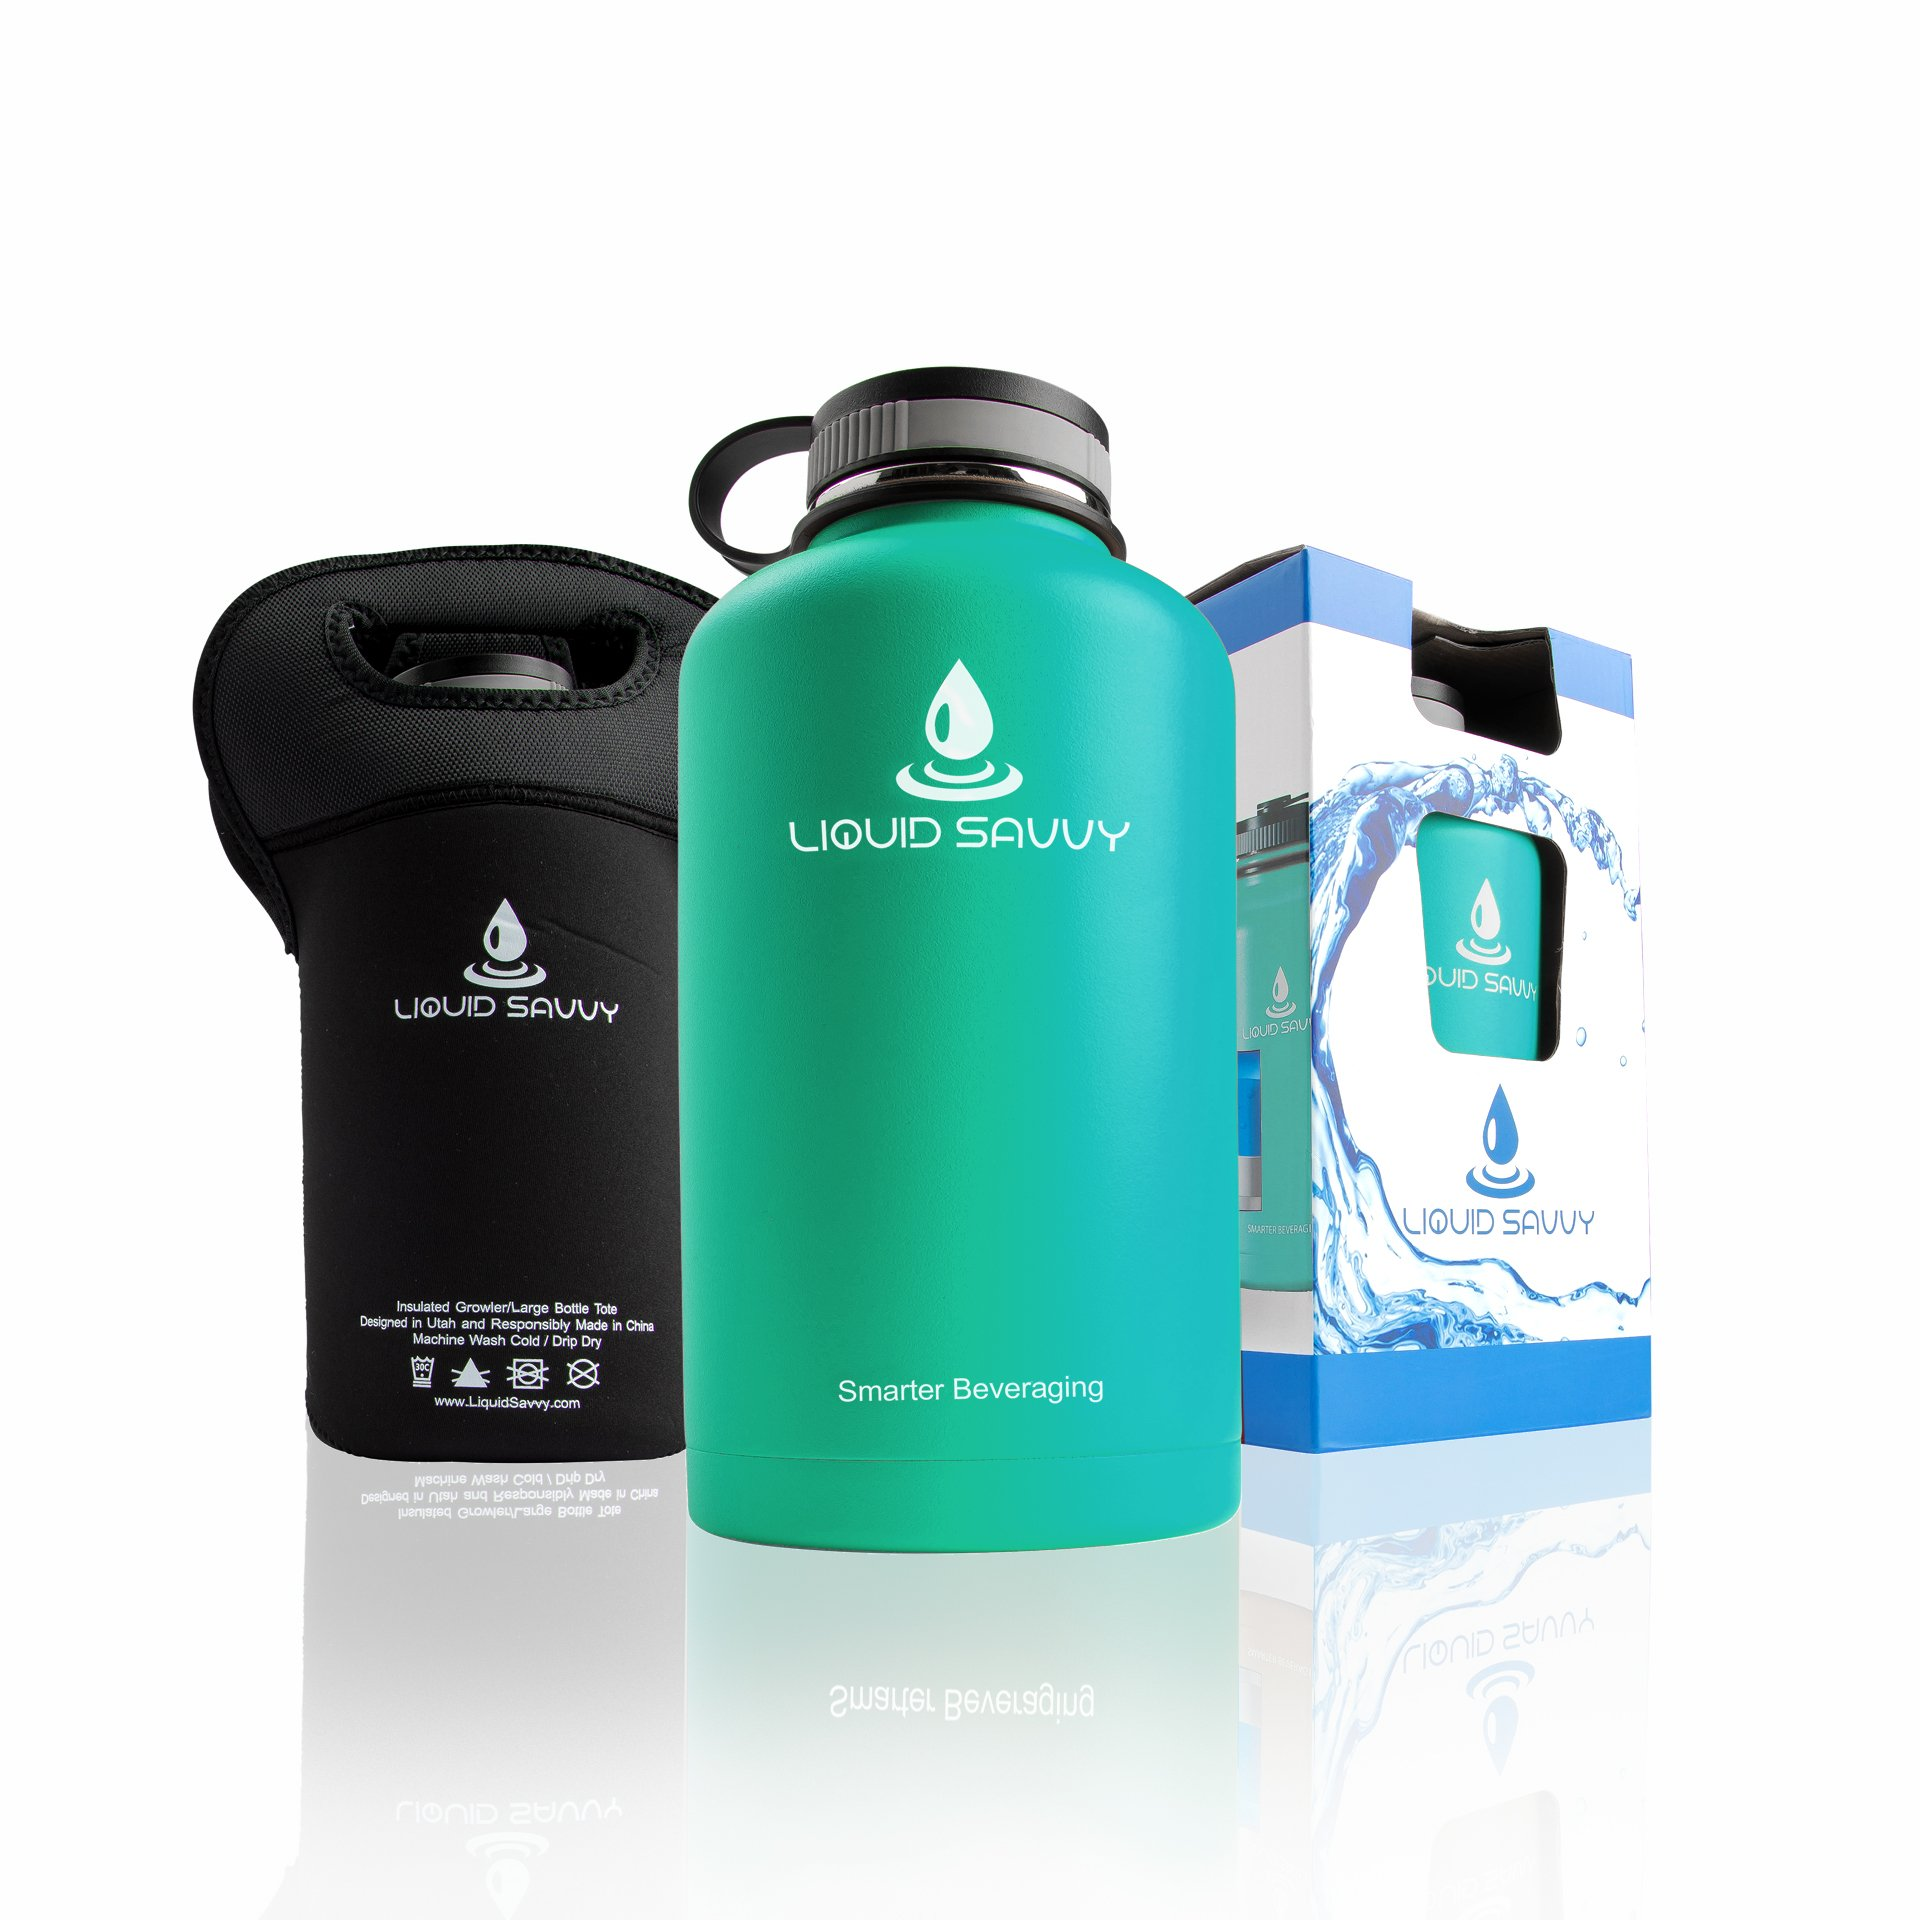 Liquid Savvy 64 oz Insulated Water Bottle with cup lid and carrying sleeve - Stainless Steel, Wide Mouth Double Walled Vacuum Insulated Bottle for Hot and Cold Beverages (Teal)